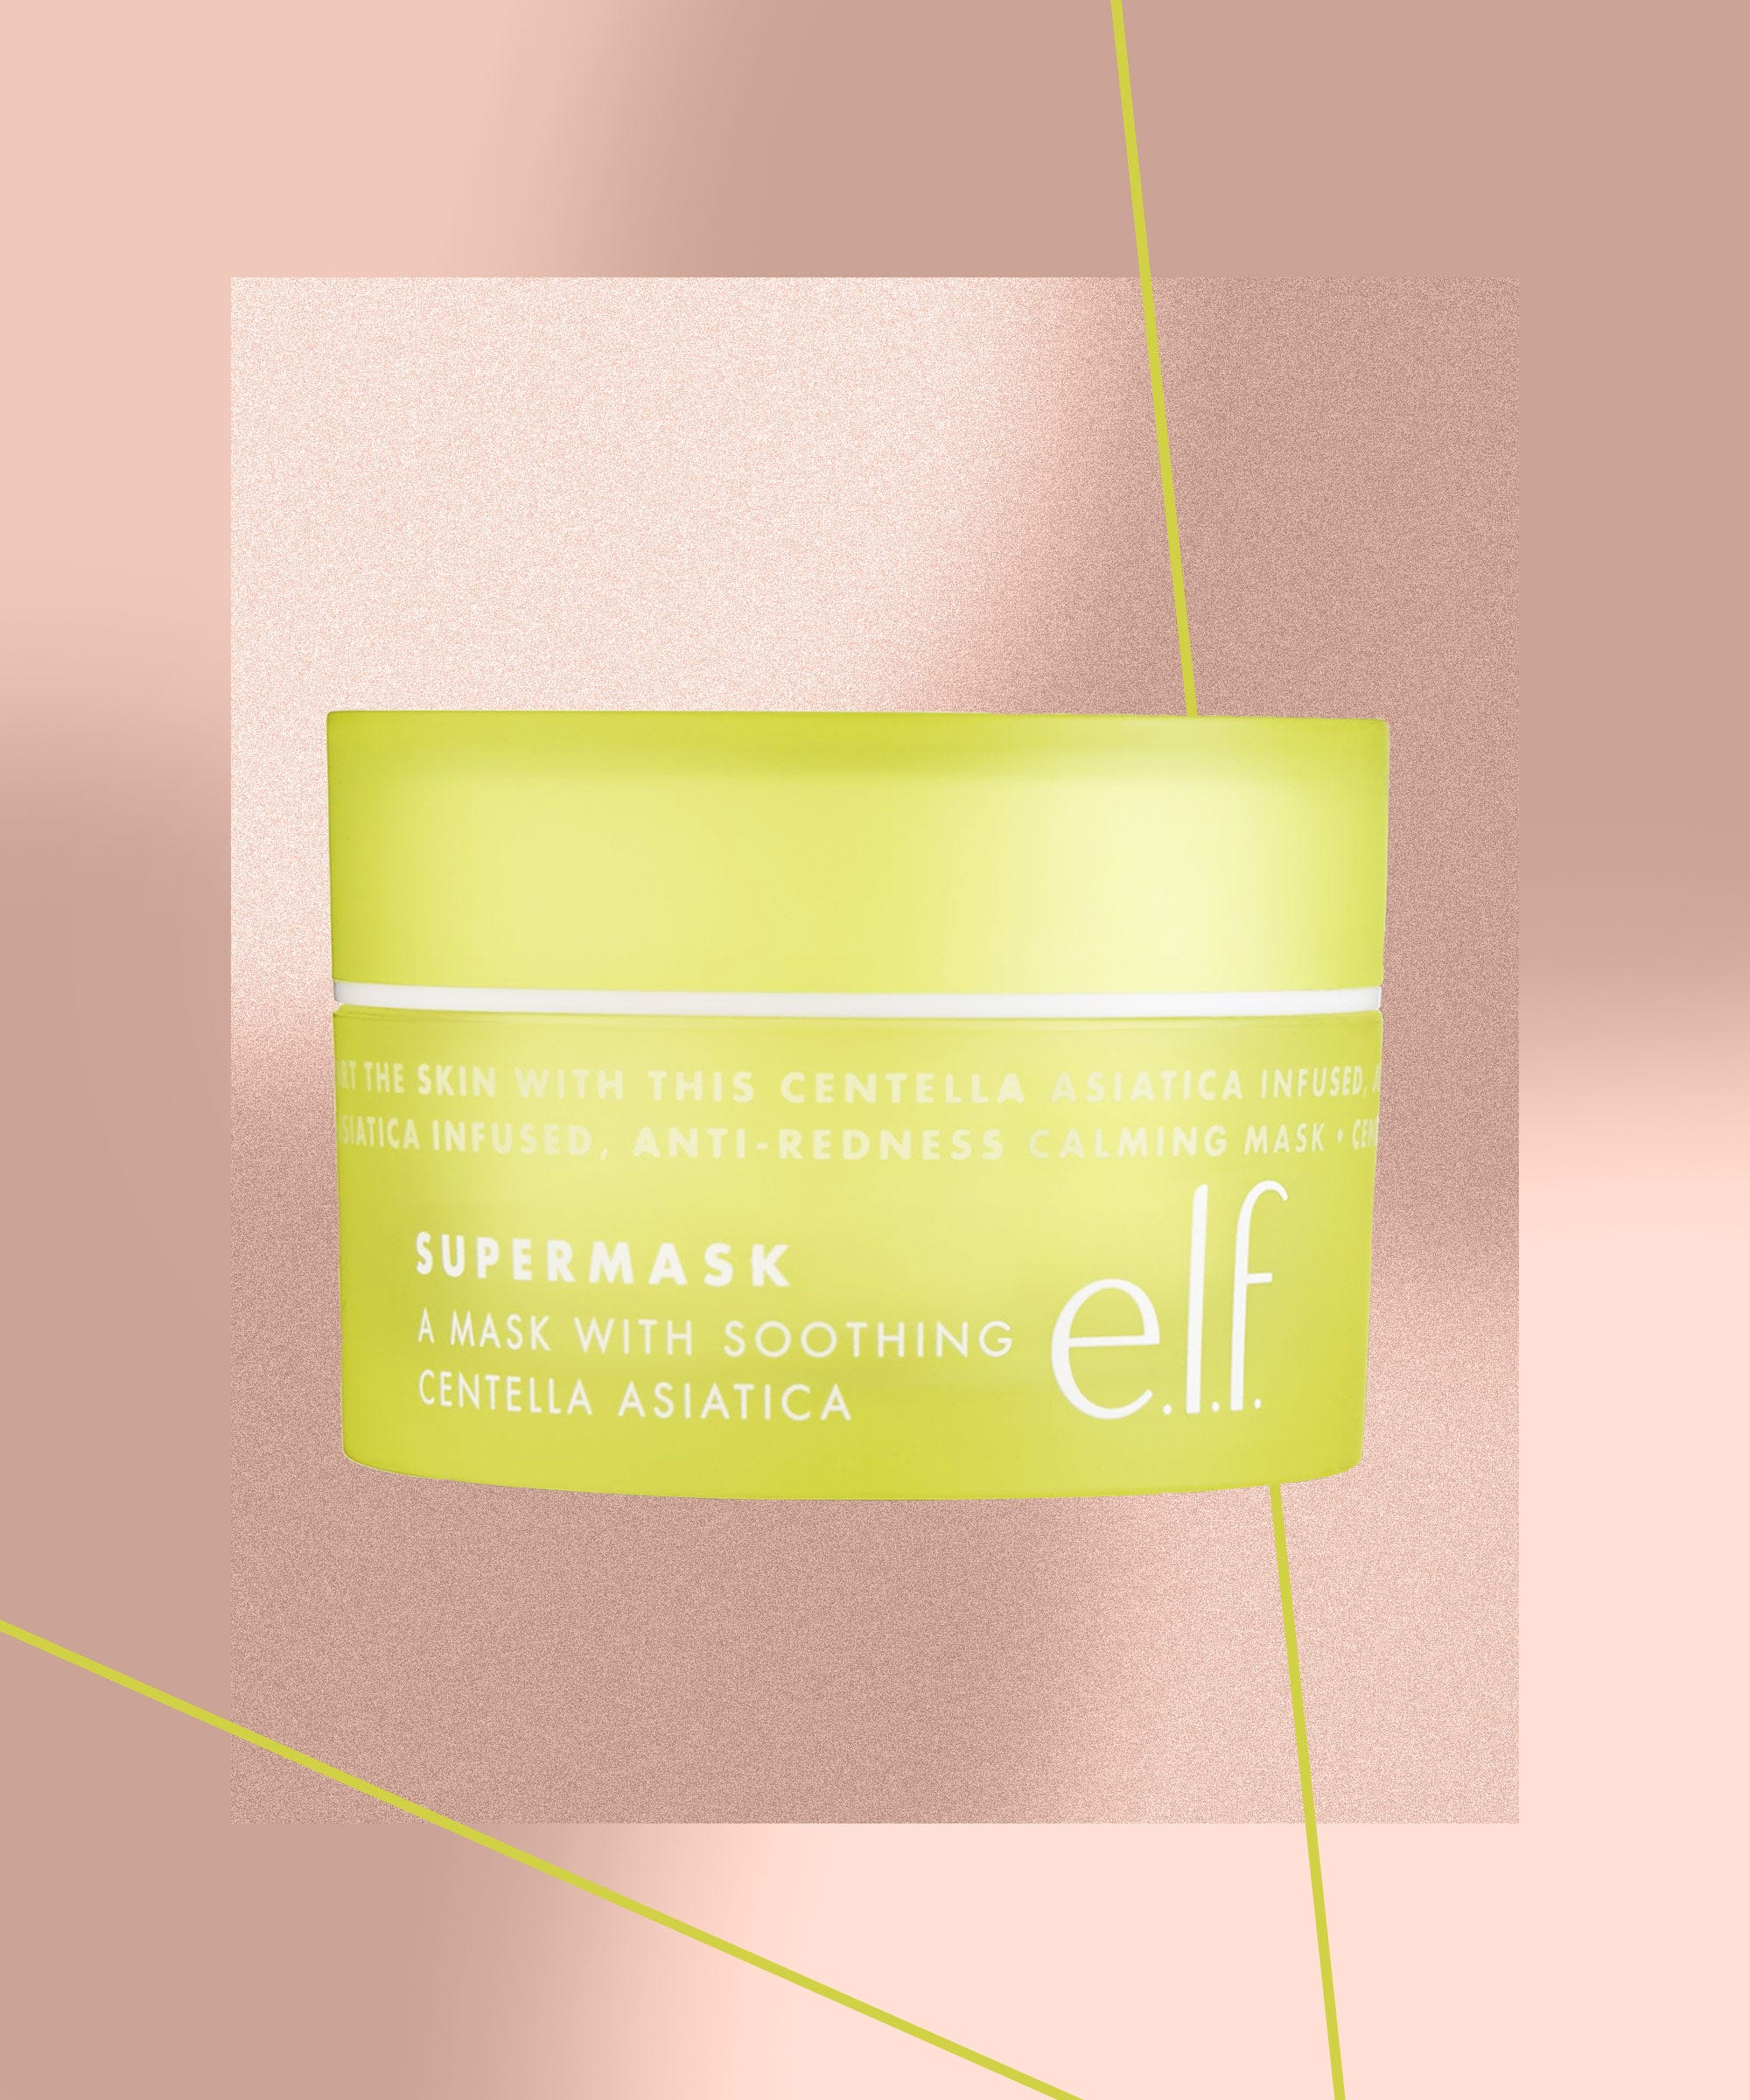 11 New Products Coming To Ulta This Month